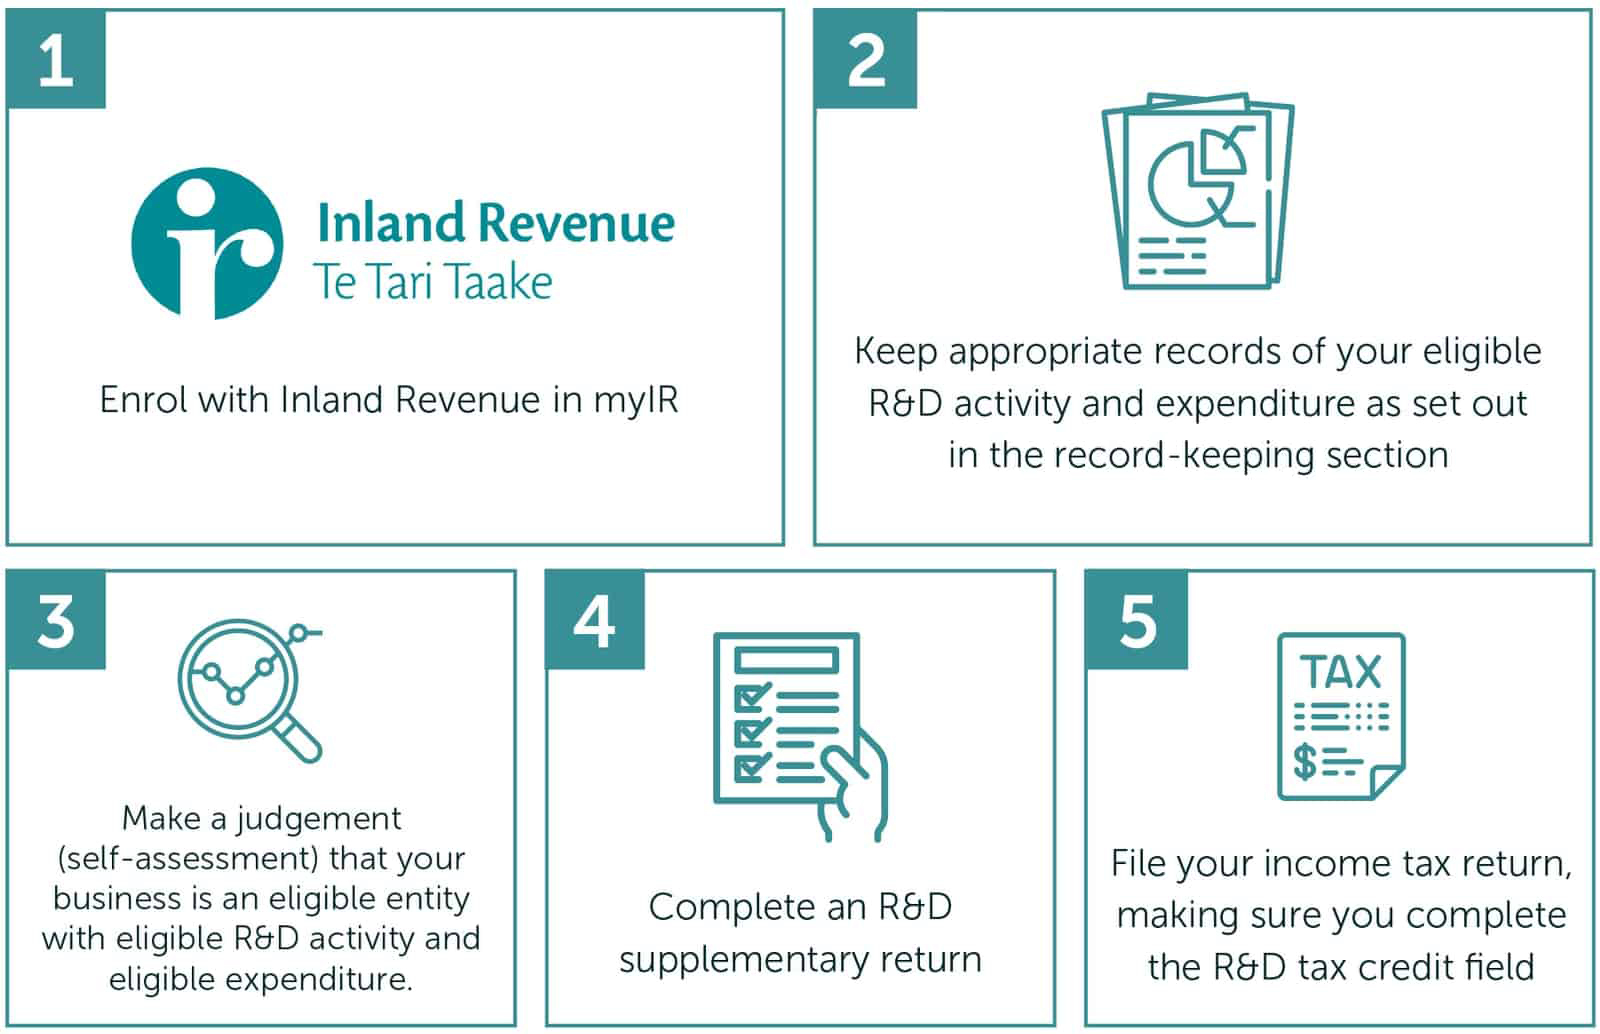 1. enrol with Inland Revenue on myIR. 2.keep appropriate records of your eligible R&D activity and expenditure as set out in the record keeping section. 3.make a judgement (self-assessment) that your business is an eligible entity with eligible R&D activity and eligible expenditure . 4.complete an R&D supplementary return. 5.	file your income tax return, making sure you complete the R&D tax credit field.